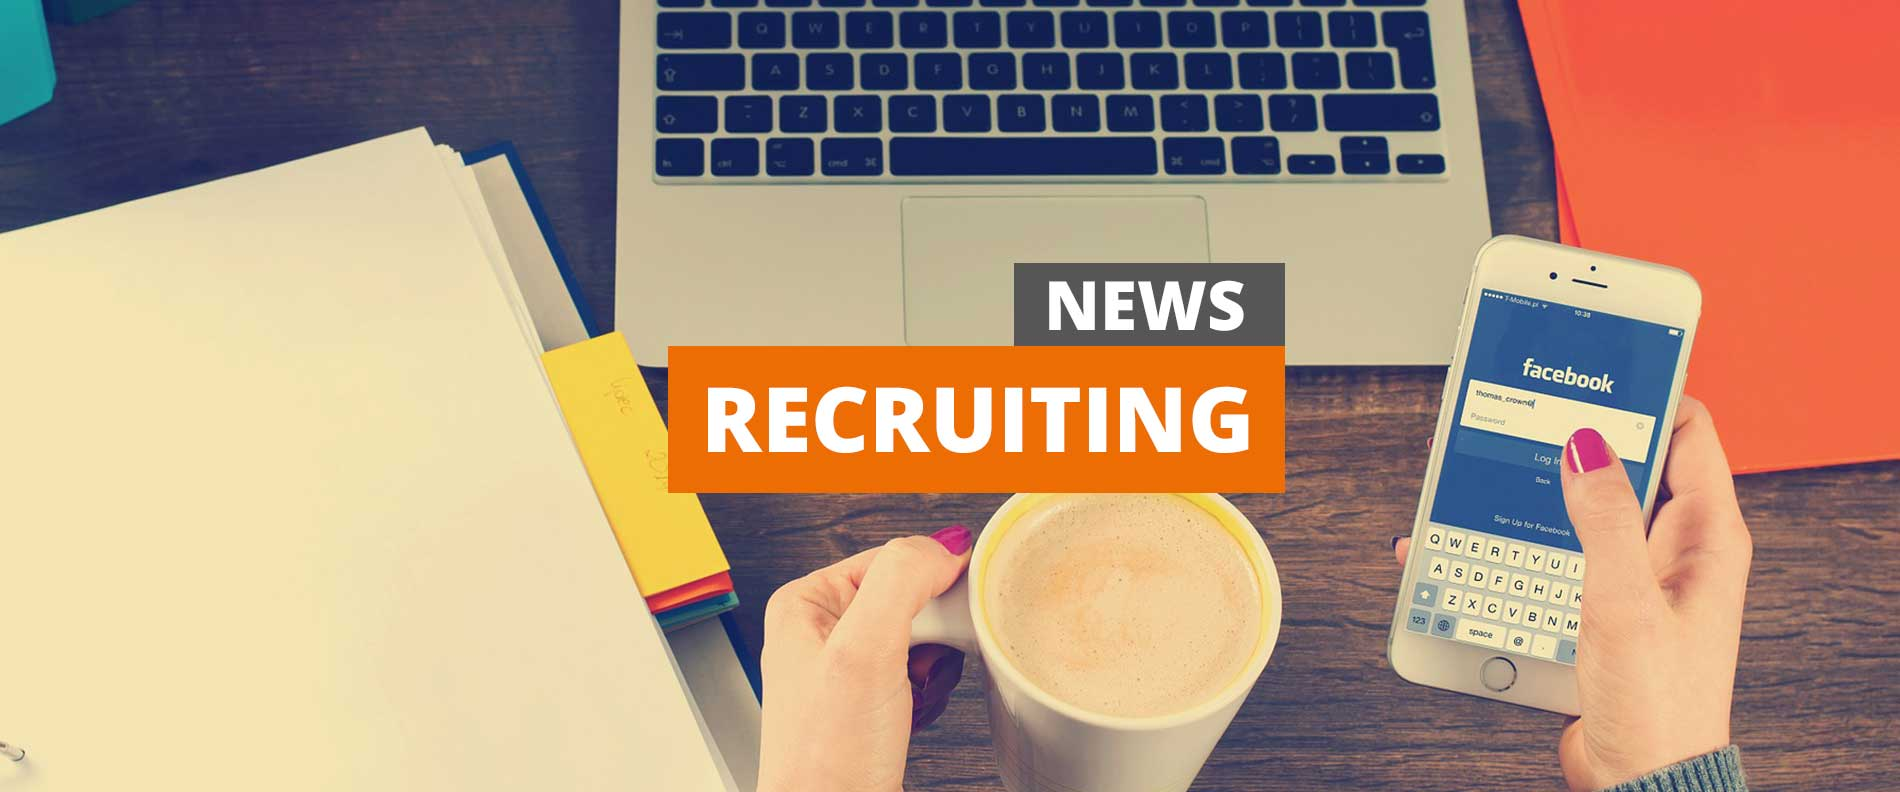 recruiting-news_homepage_2019-04-29